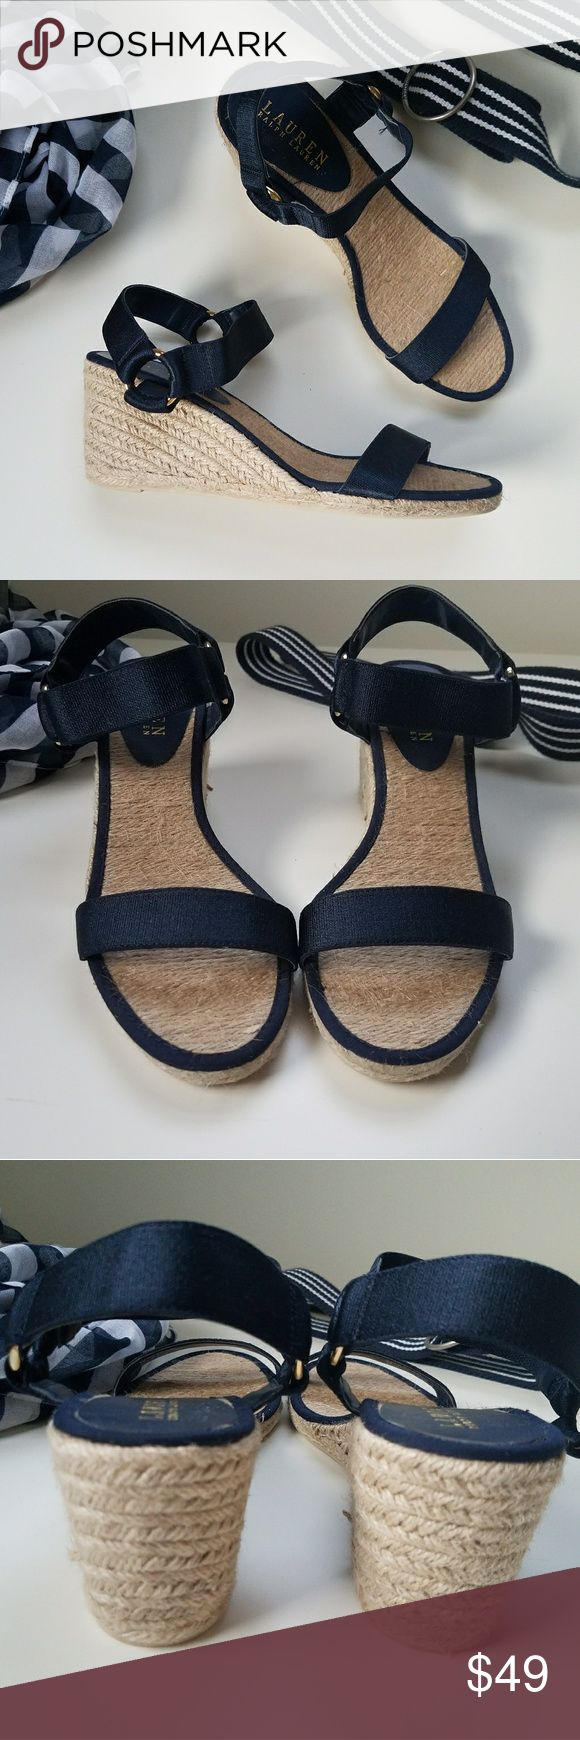 Lauren by Ralph Lauren Navy Banded Espadrilles These fabulous navy wedge sandals are a style staple, easy to wear they'll look great with summer dresses. The navy sandals are made from canvas material and feature a raffia wedge heel that is 3¾ inches in height.  ·    Navy Canvas straps  ·    Raffia 3¾ inch wedge heel  ·    Thick toe band strap  ·    Women's wedges Lauren Ralph Lauren Shoes Espadrilles